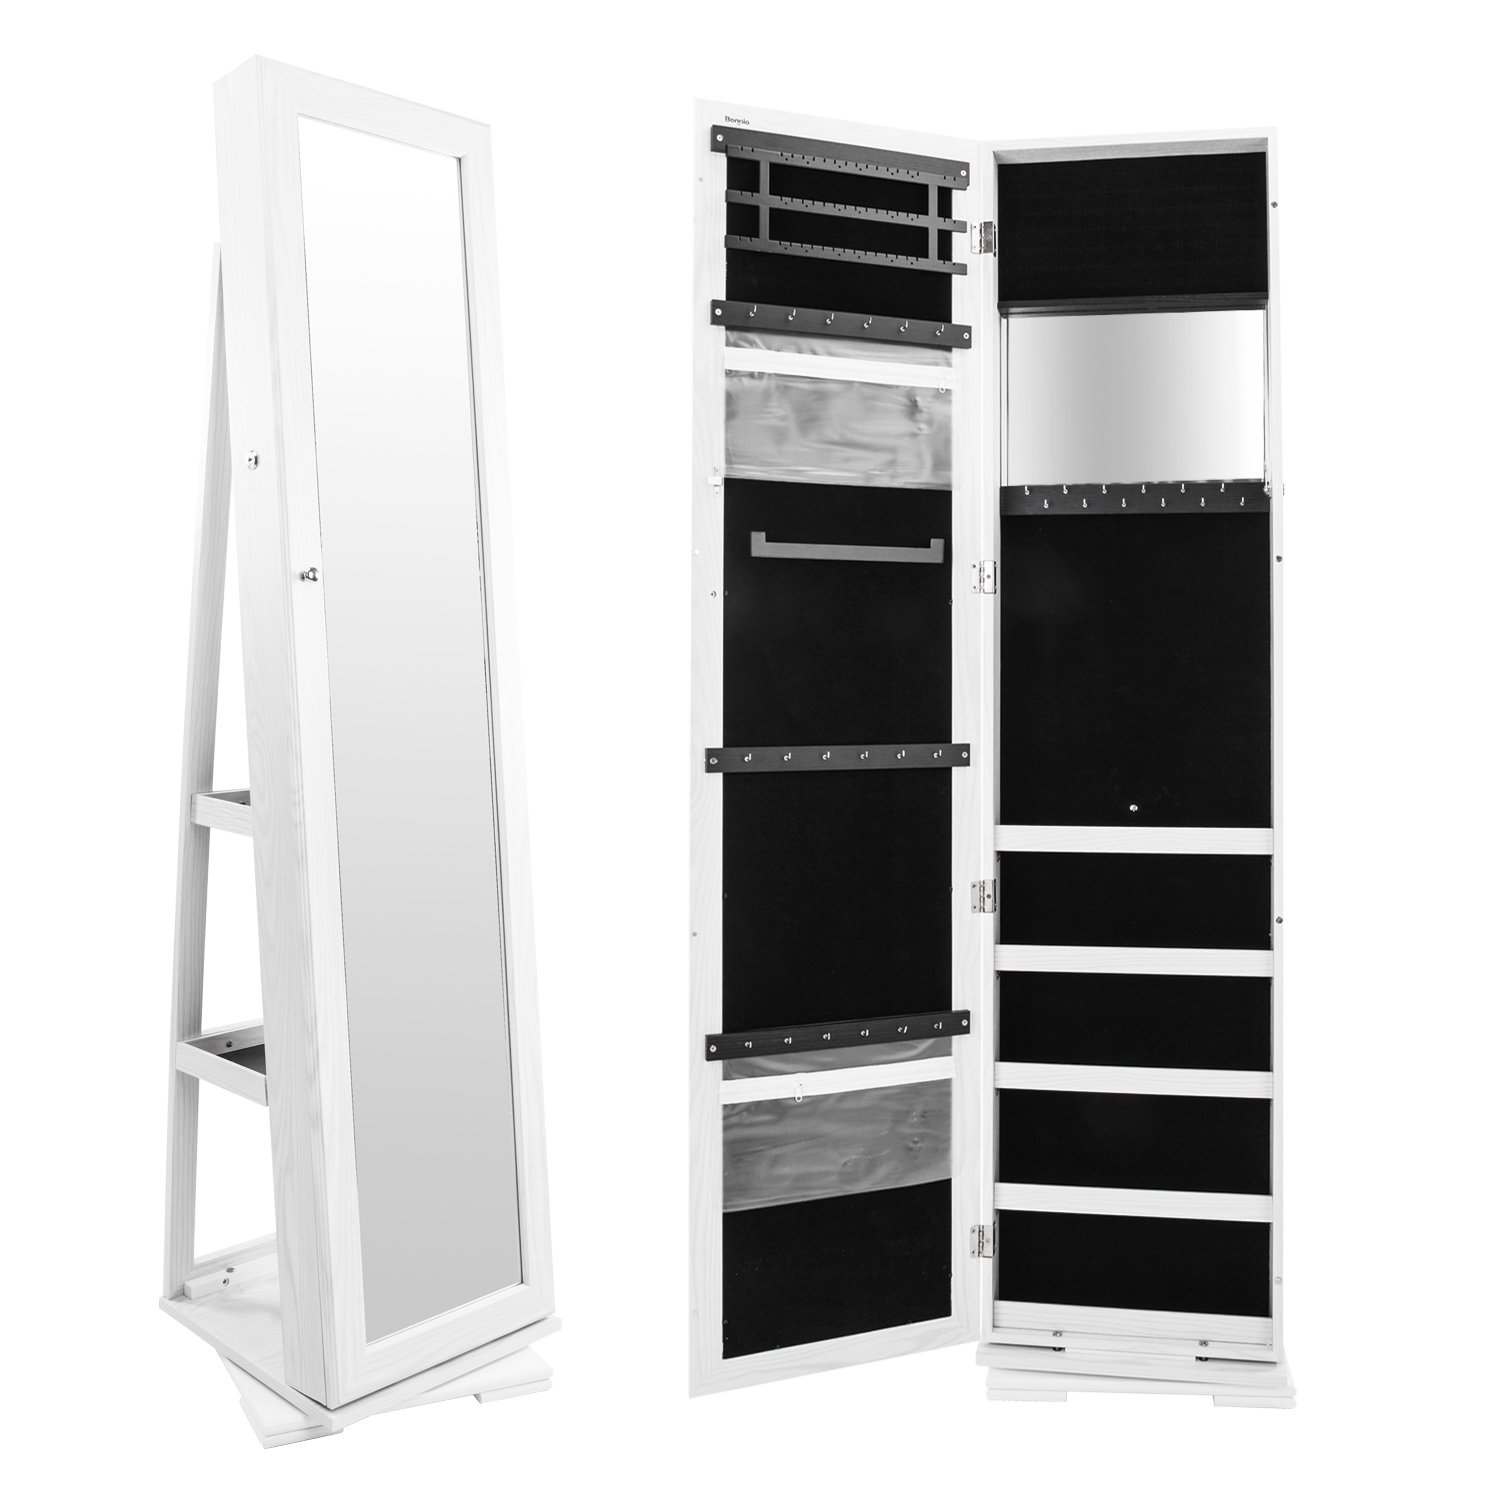 Bonnlo Jewelry Armoire Cosmetic Organizer, Mirrored Jewelry Closet Cabinet, Over The Door Mirror Wall, Lockable Mounted Cabinet, Full Length Mirror Solid Construction (360 Rotation)